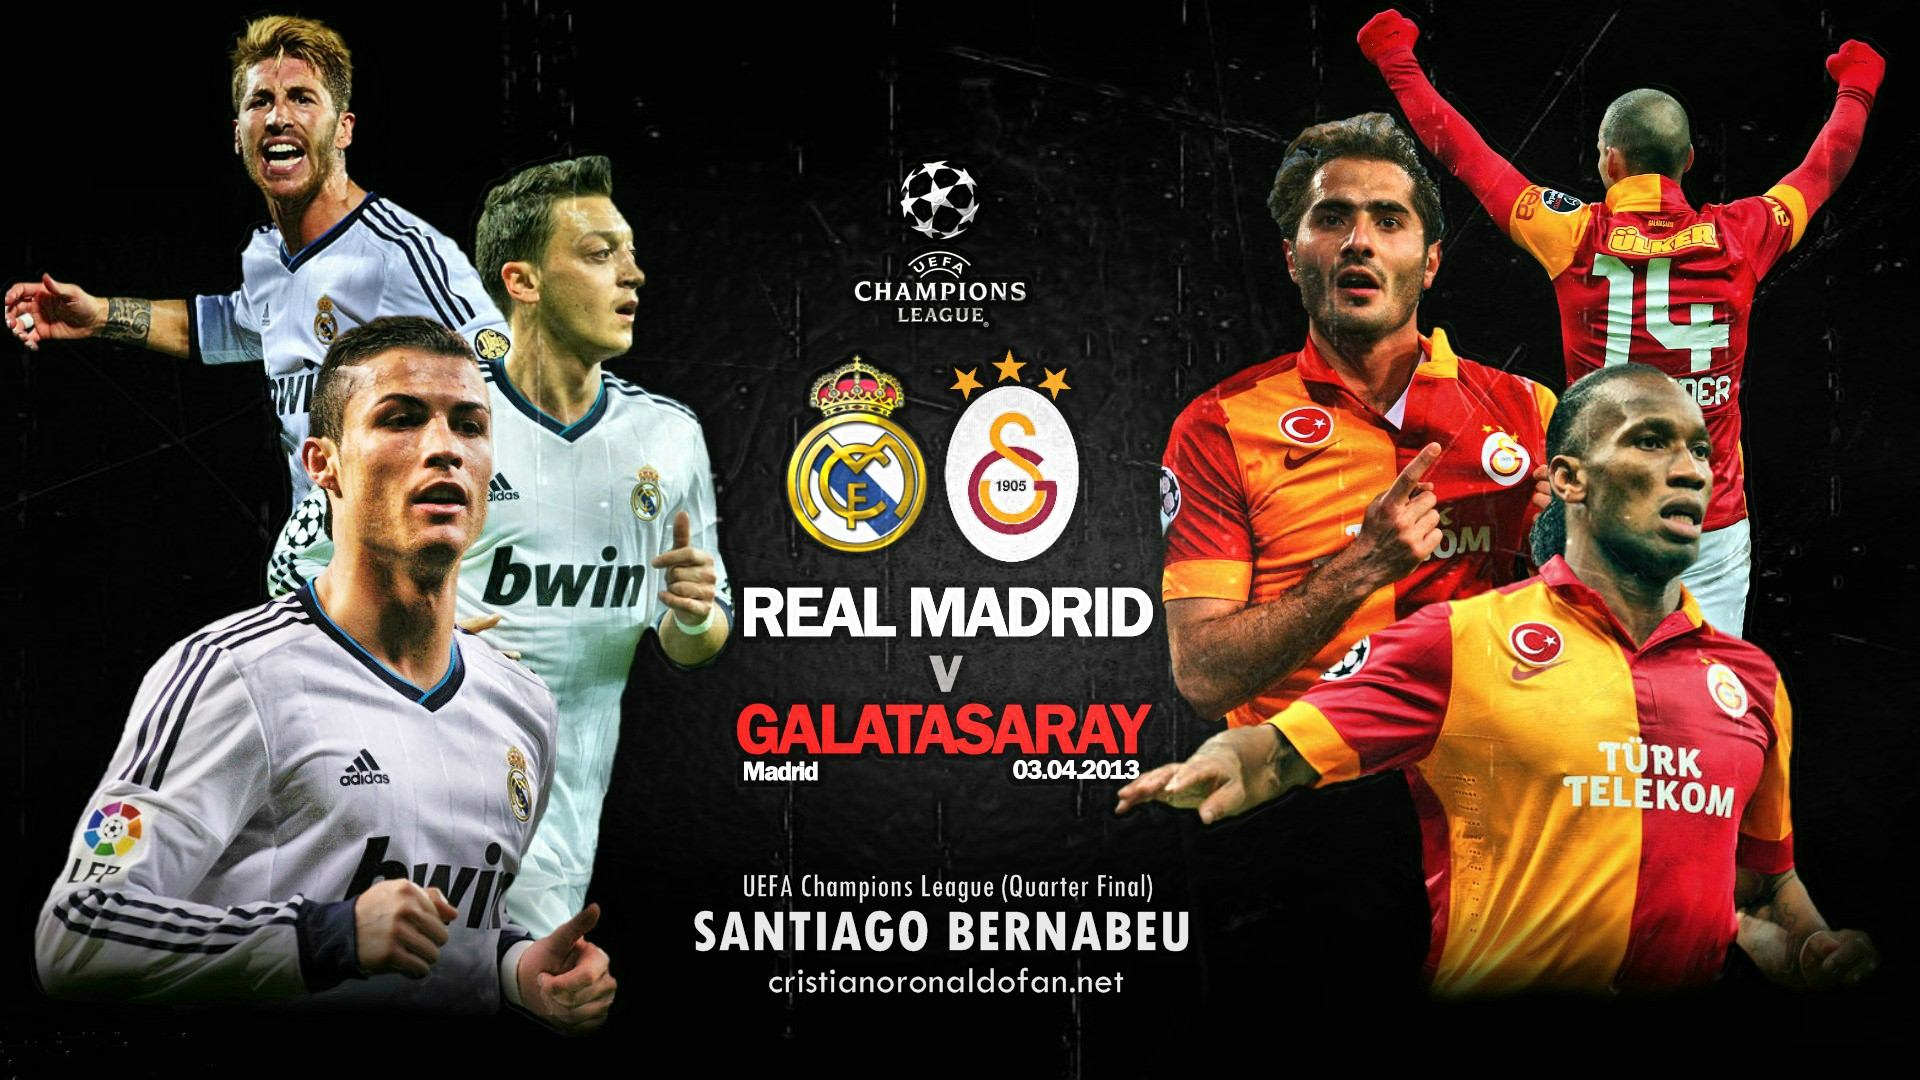 Real-Madrid-vs-Galatasaray-Champions-League-Background-HD-Wallpaper